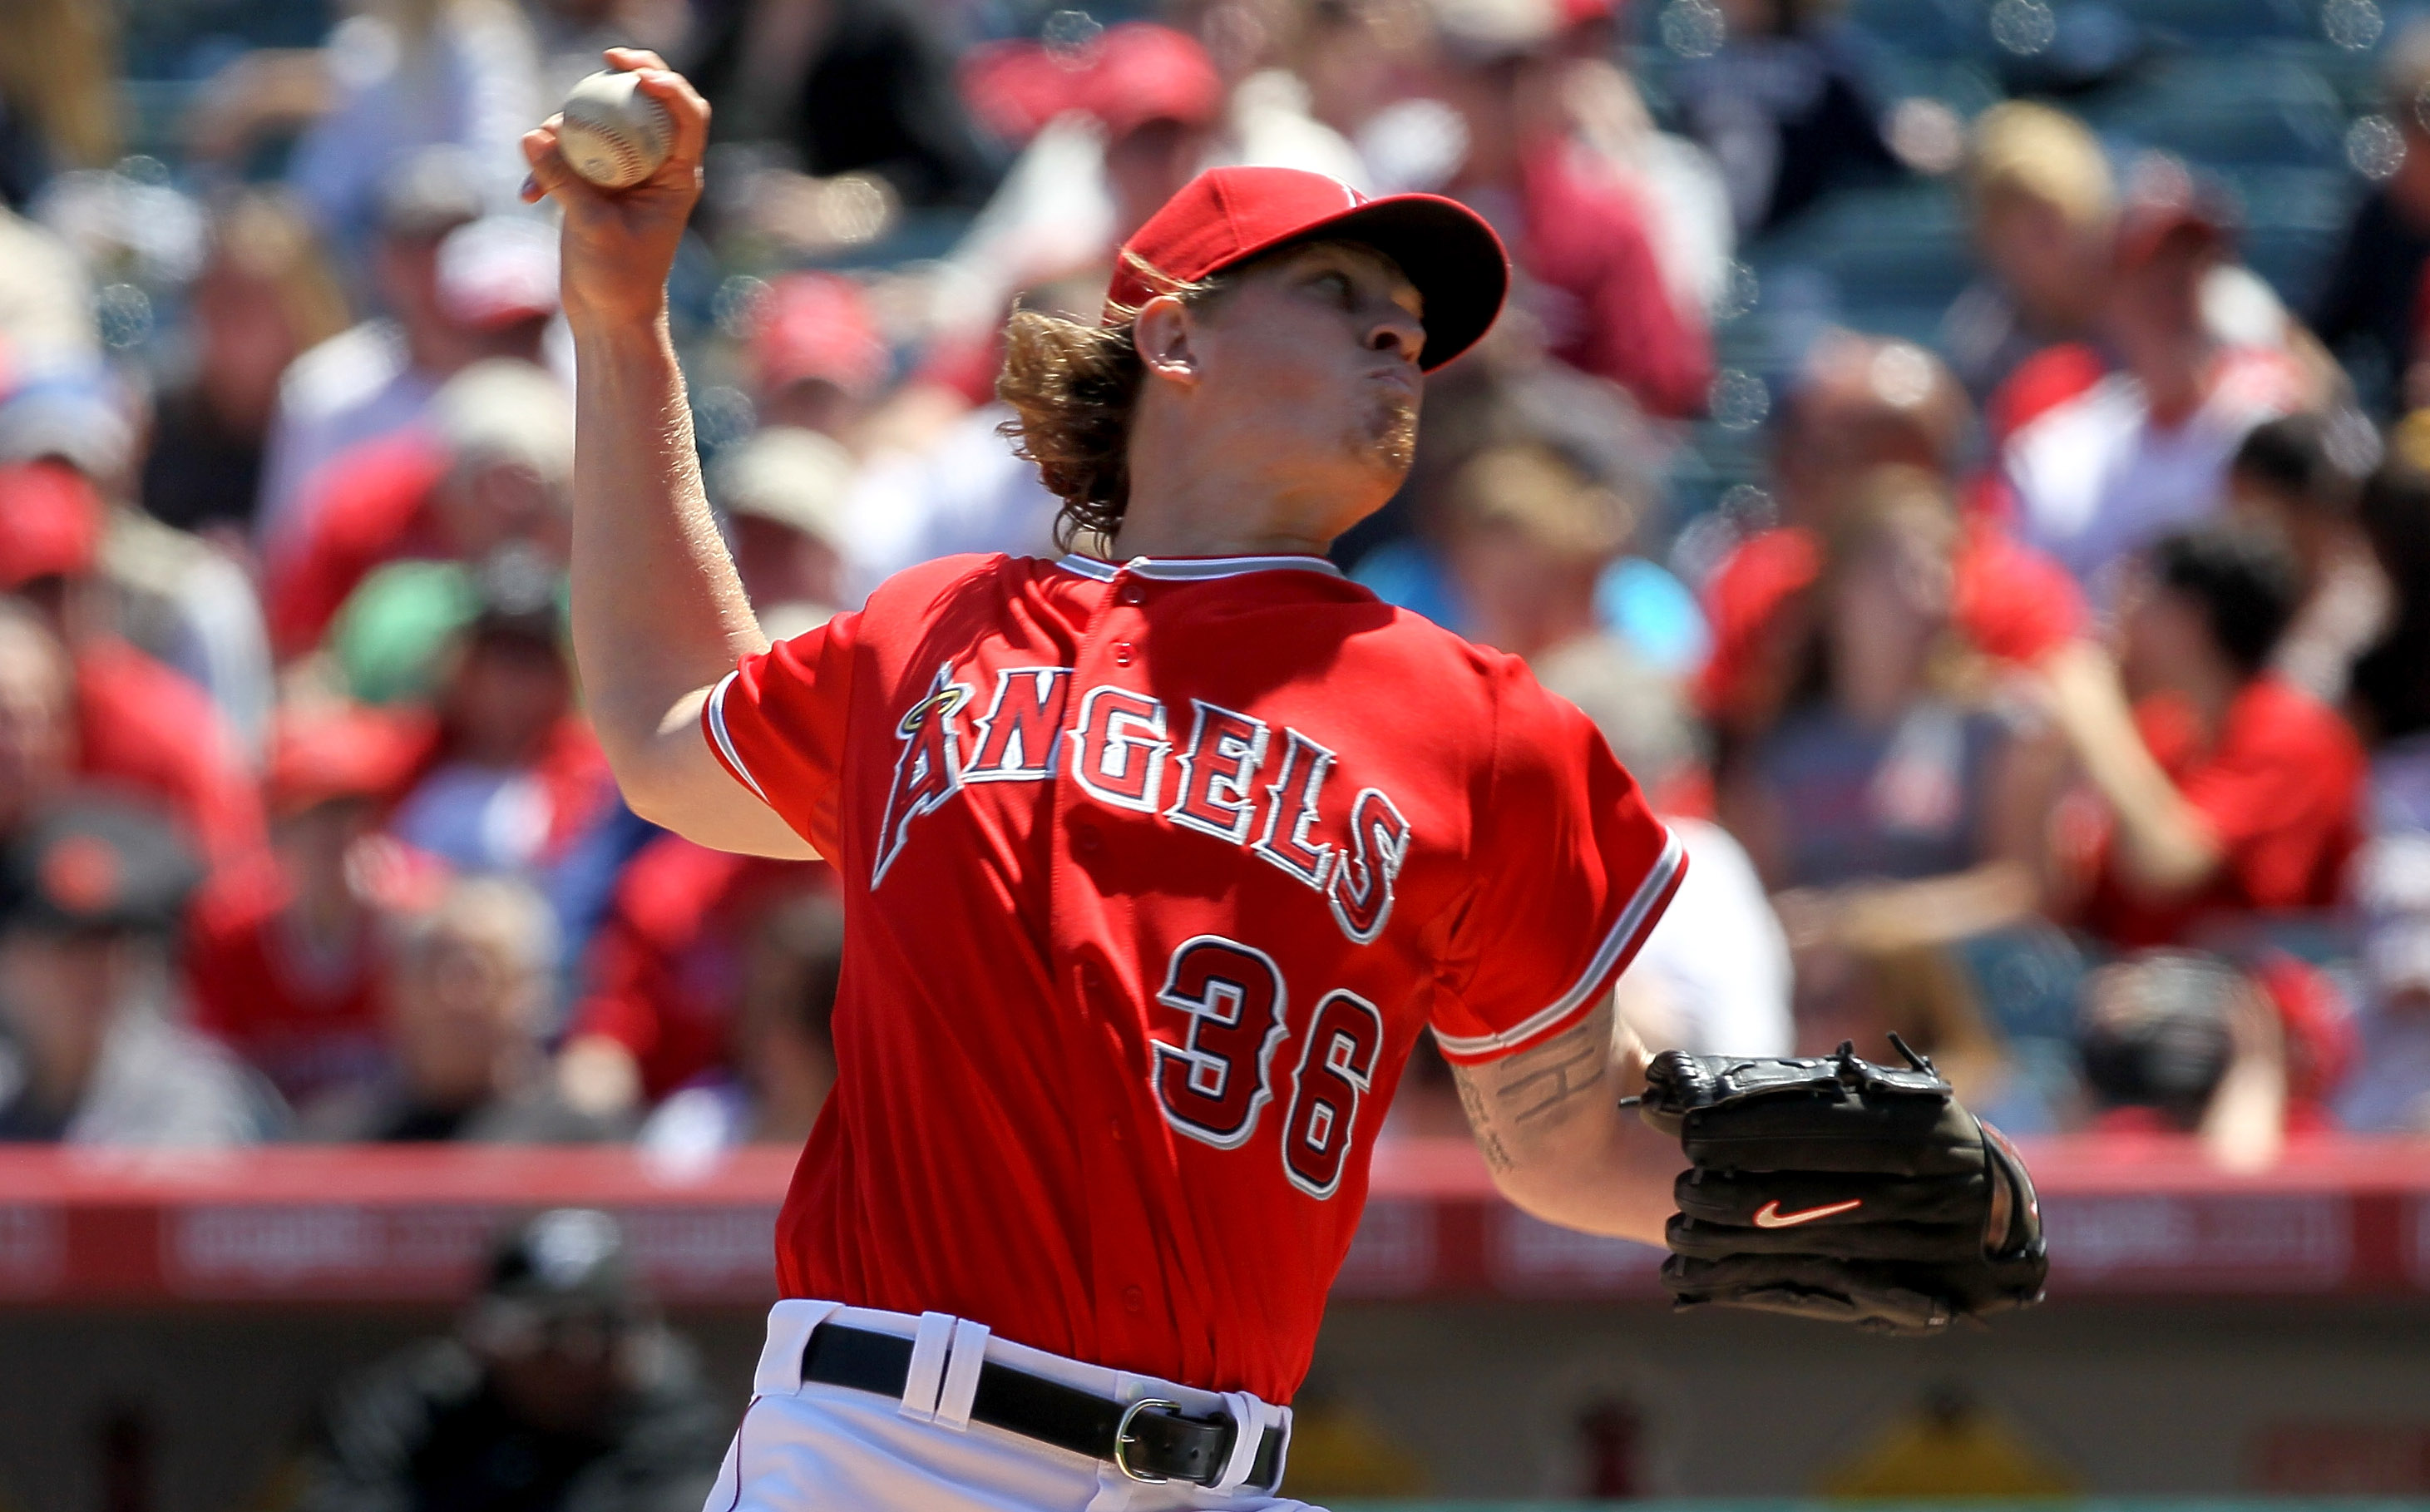 ANAHEIM, CA - APRIL 10:  Jered Weaver #36 of the Los Angeles Angels of Anaheim throws a pitch against the Toronto Blue Jays on April 10, 2011 at Angel Stadium in Anaheim, California.  (Photo by Stephen Dunn/Getty Images)